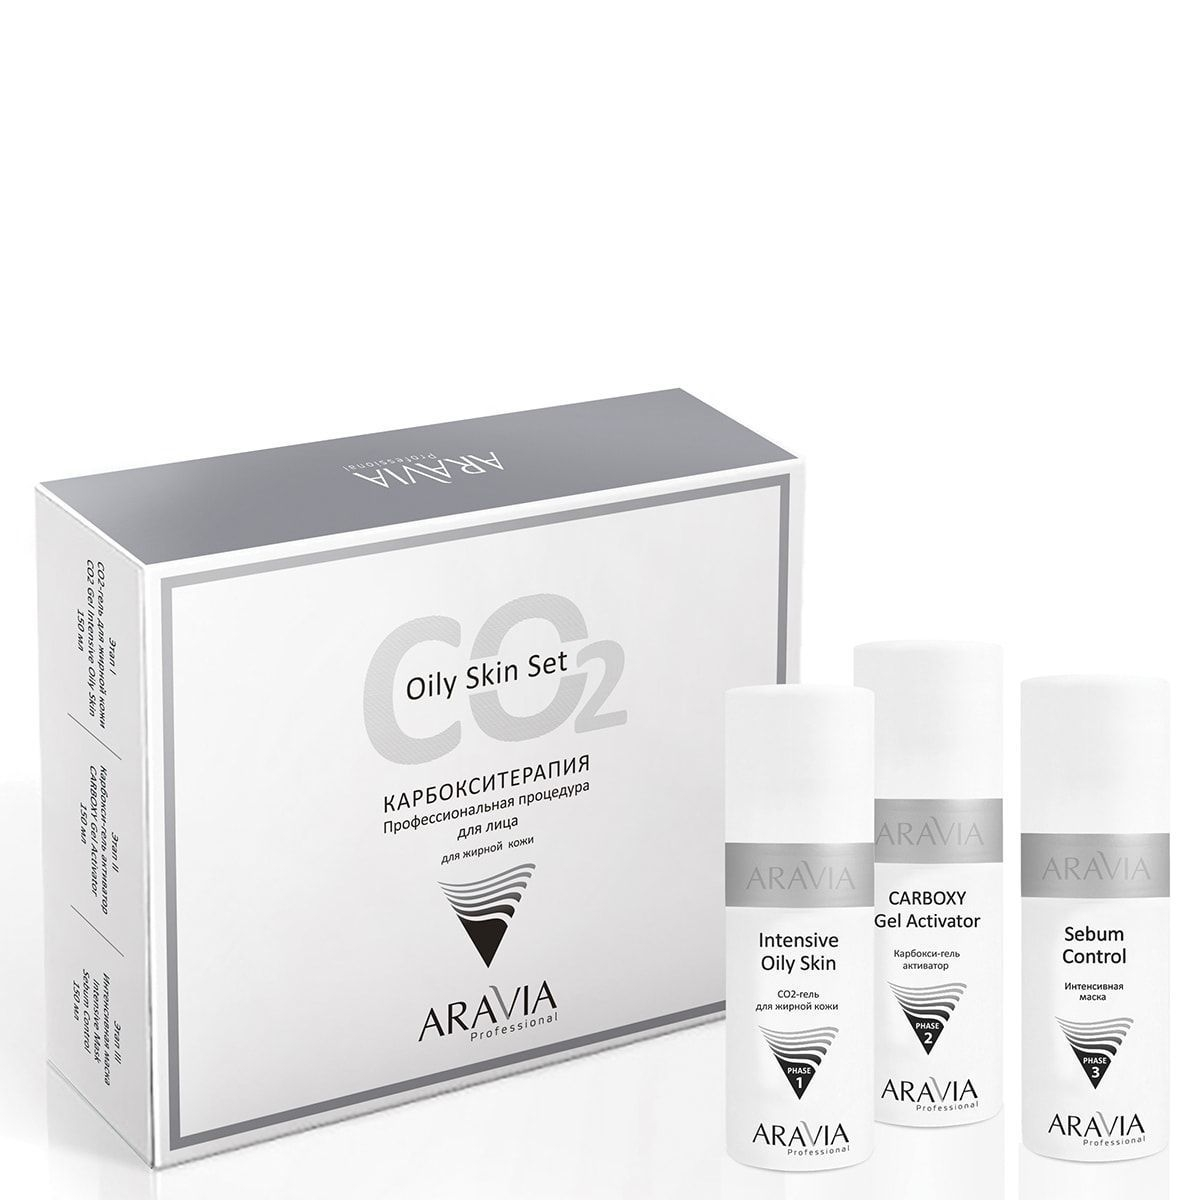 ARAVIA Набор Карбокситерапии CO2 Oily Skin Set для Жирной Кожи Лица, 3*150 мл карбокситерапия корея